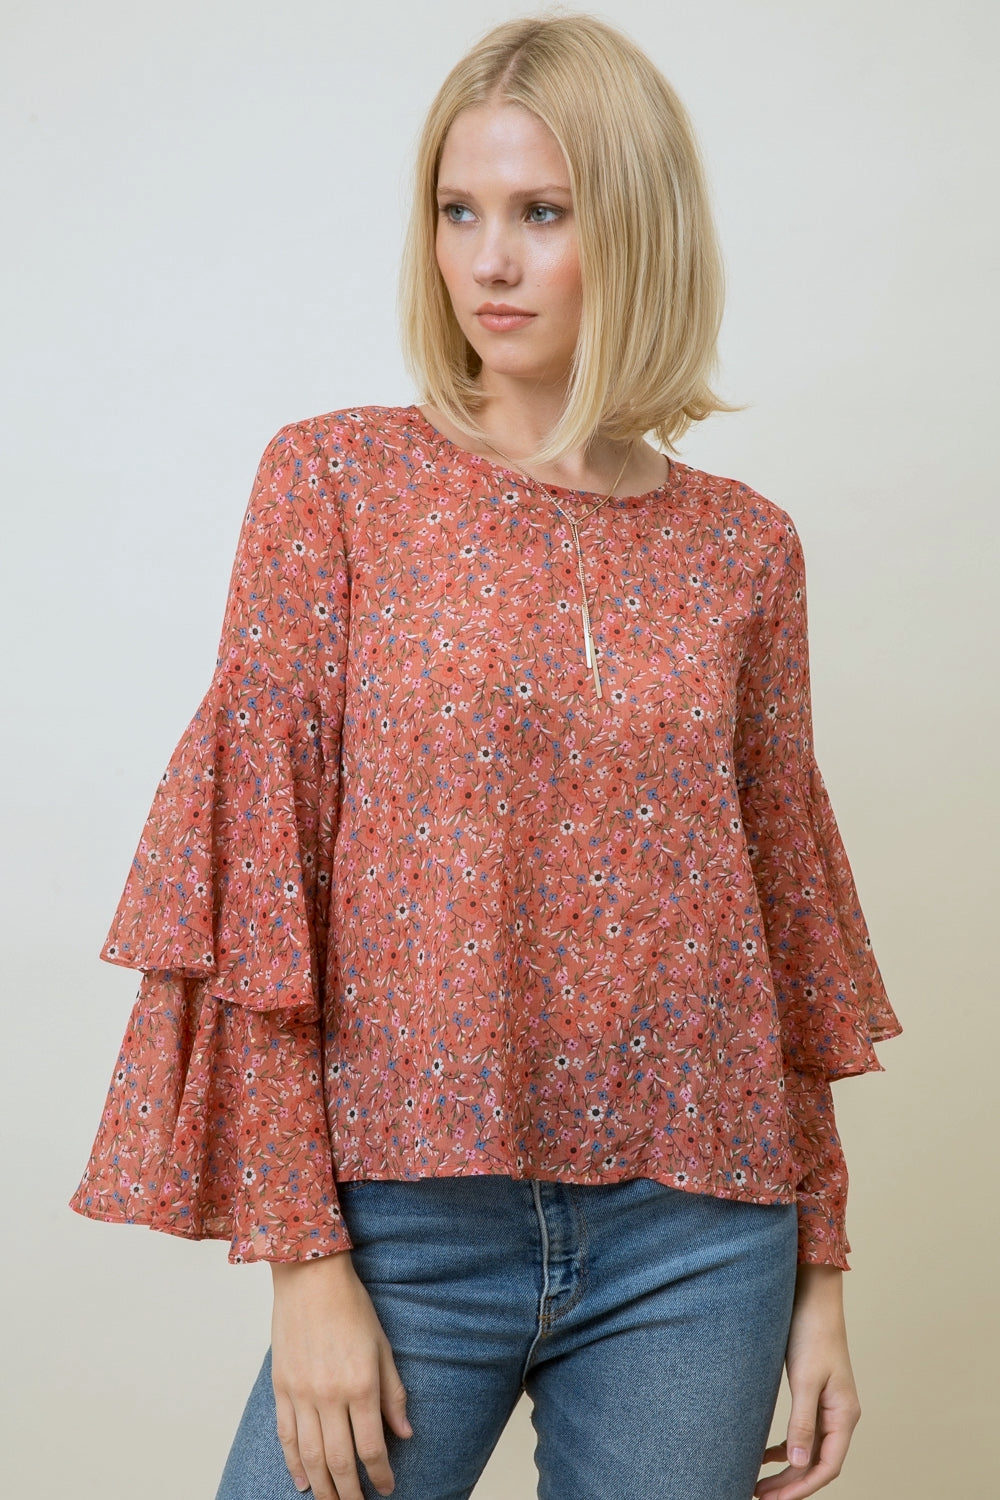 Floral Blouse with Ruffled Sleeves